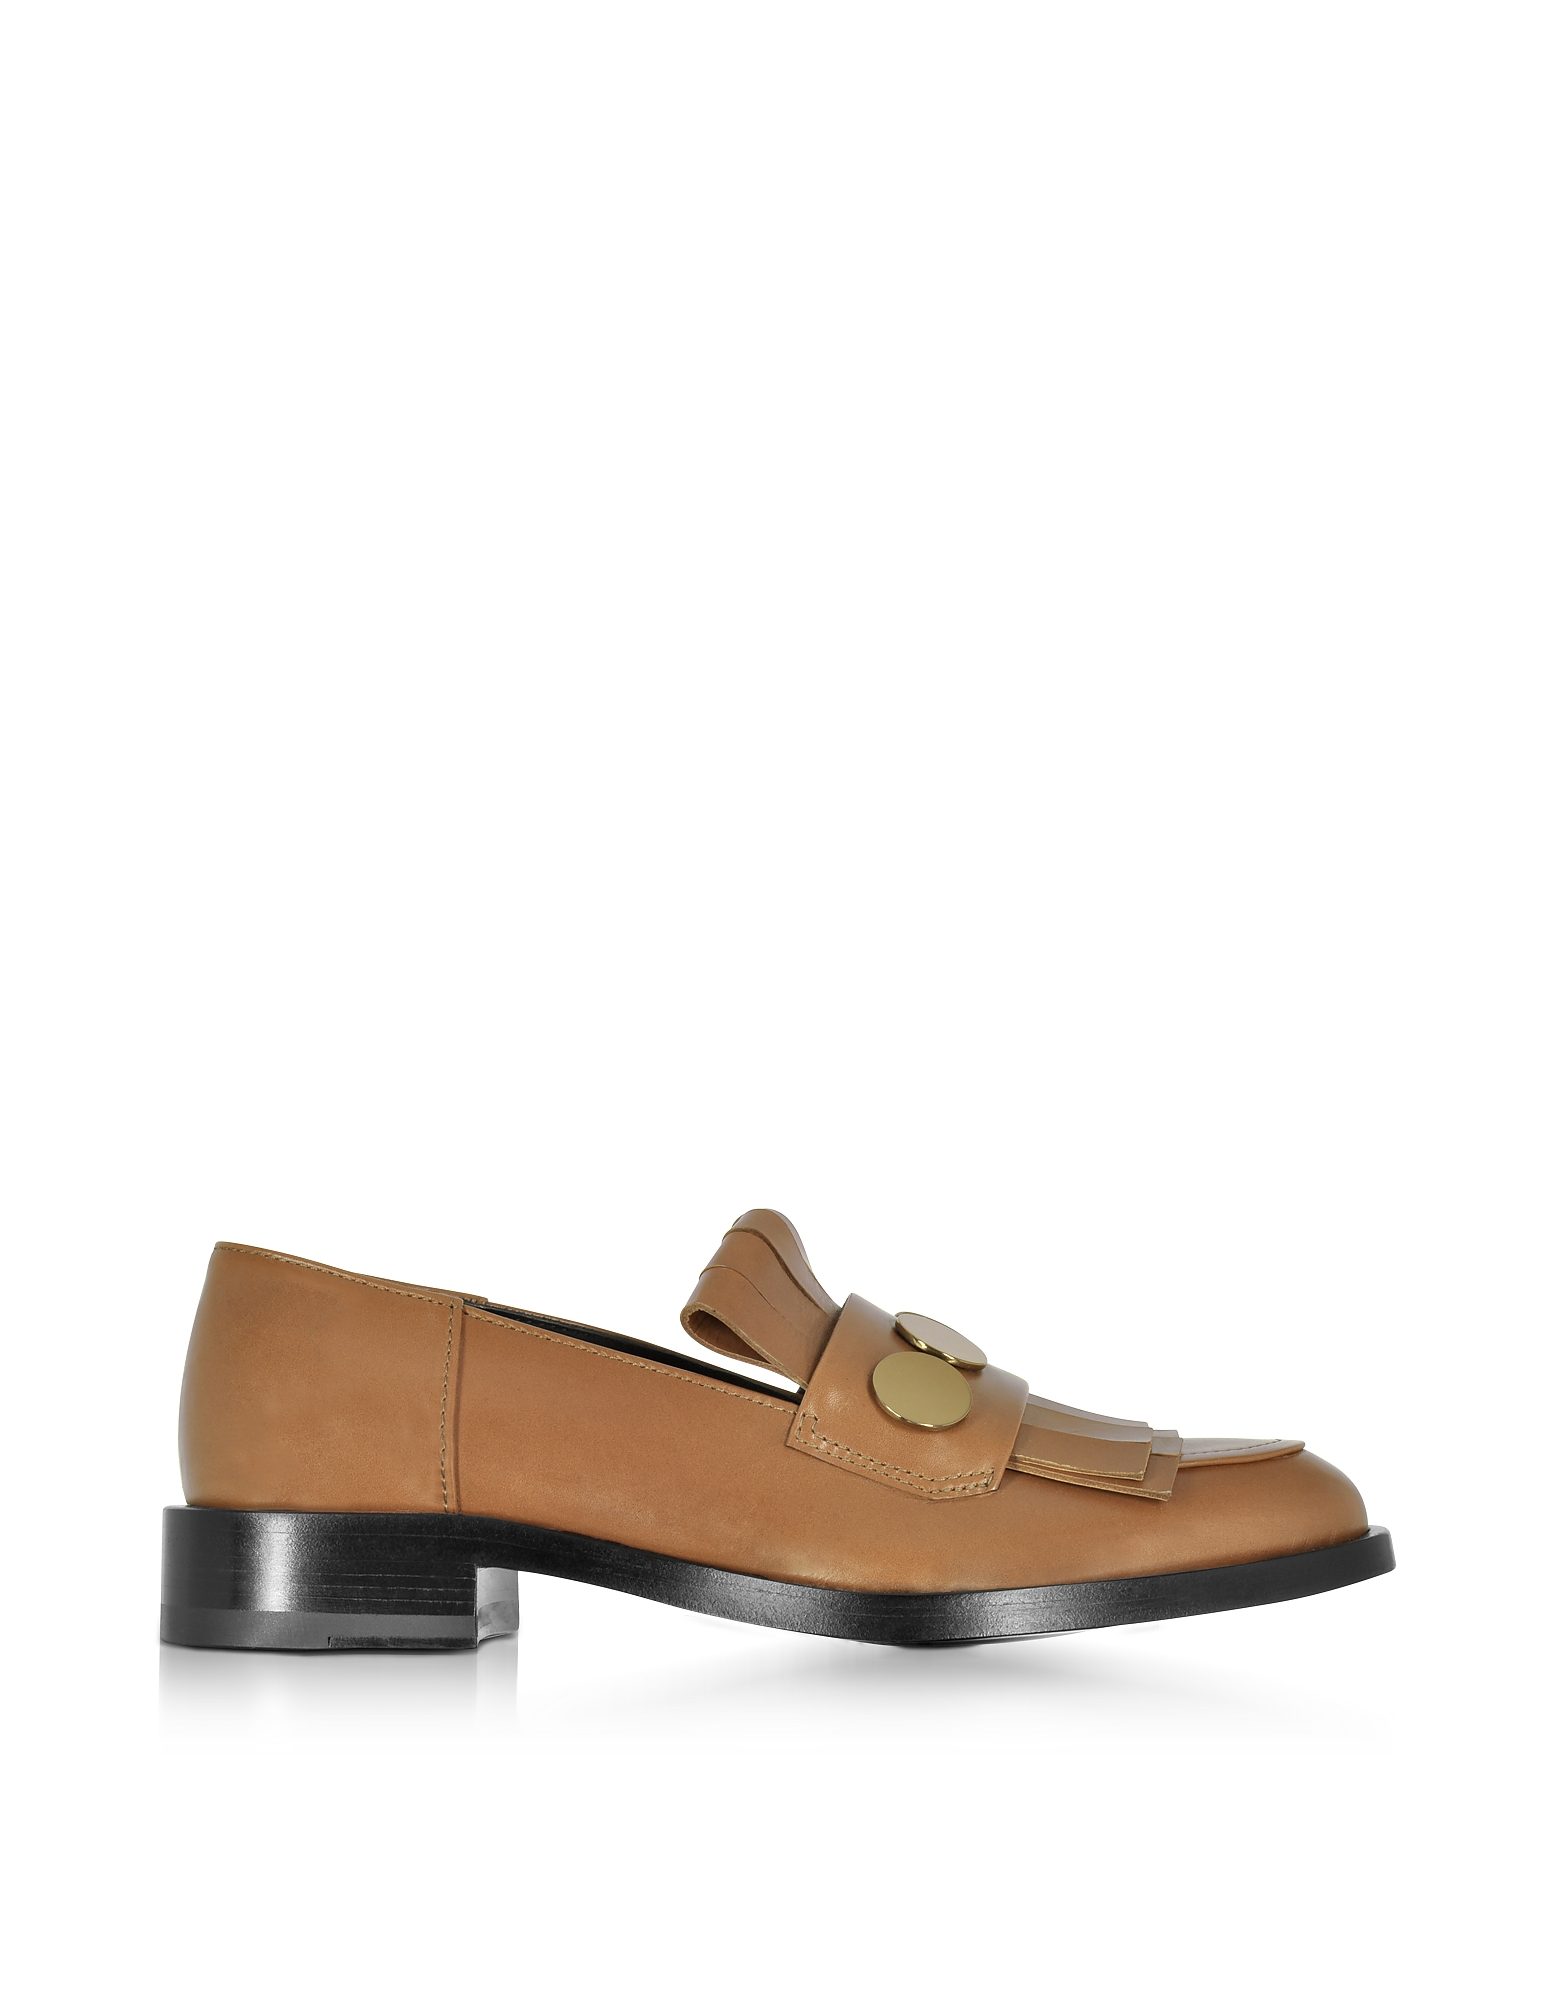 Pierre Hardy Hardy Dandy Penny Camel & Bronze Leather Loafer